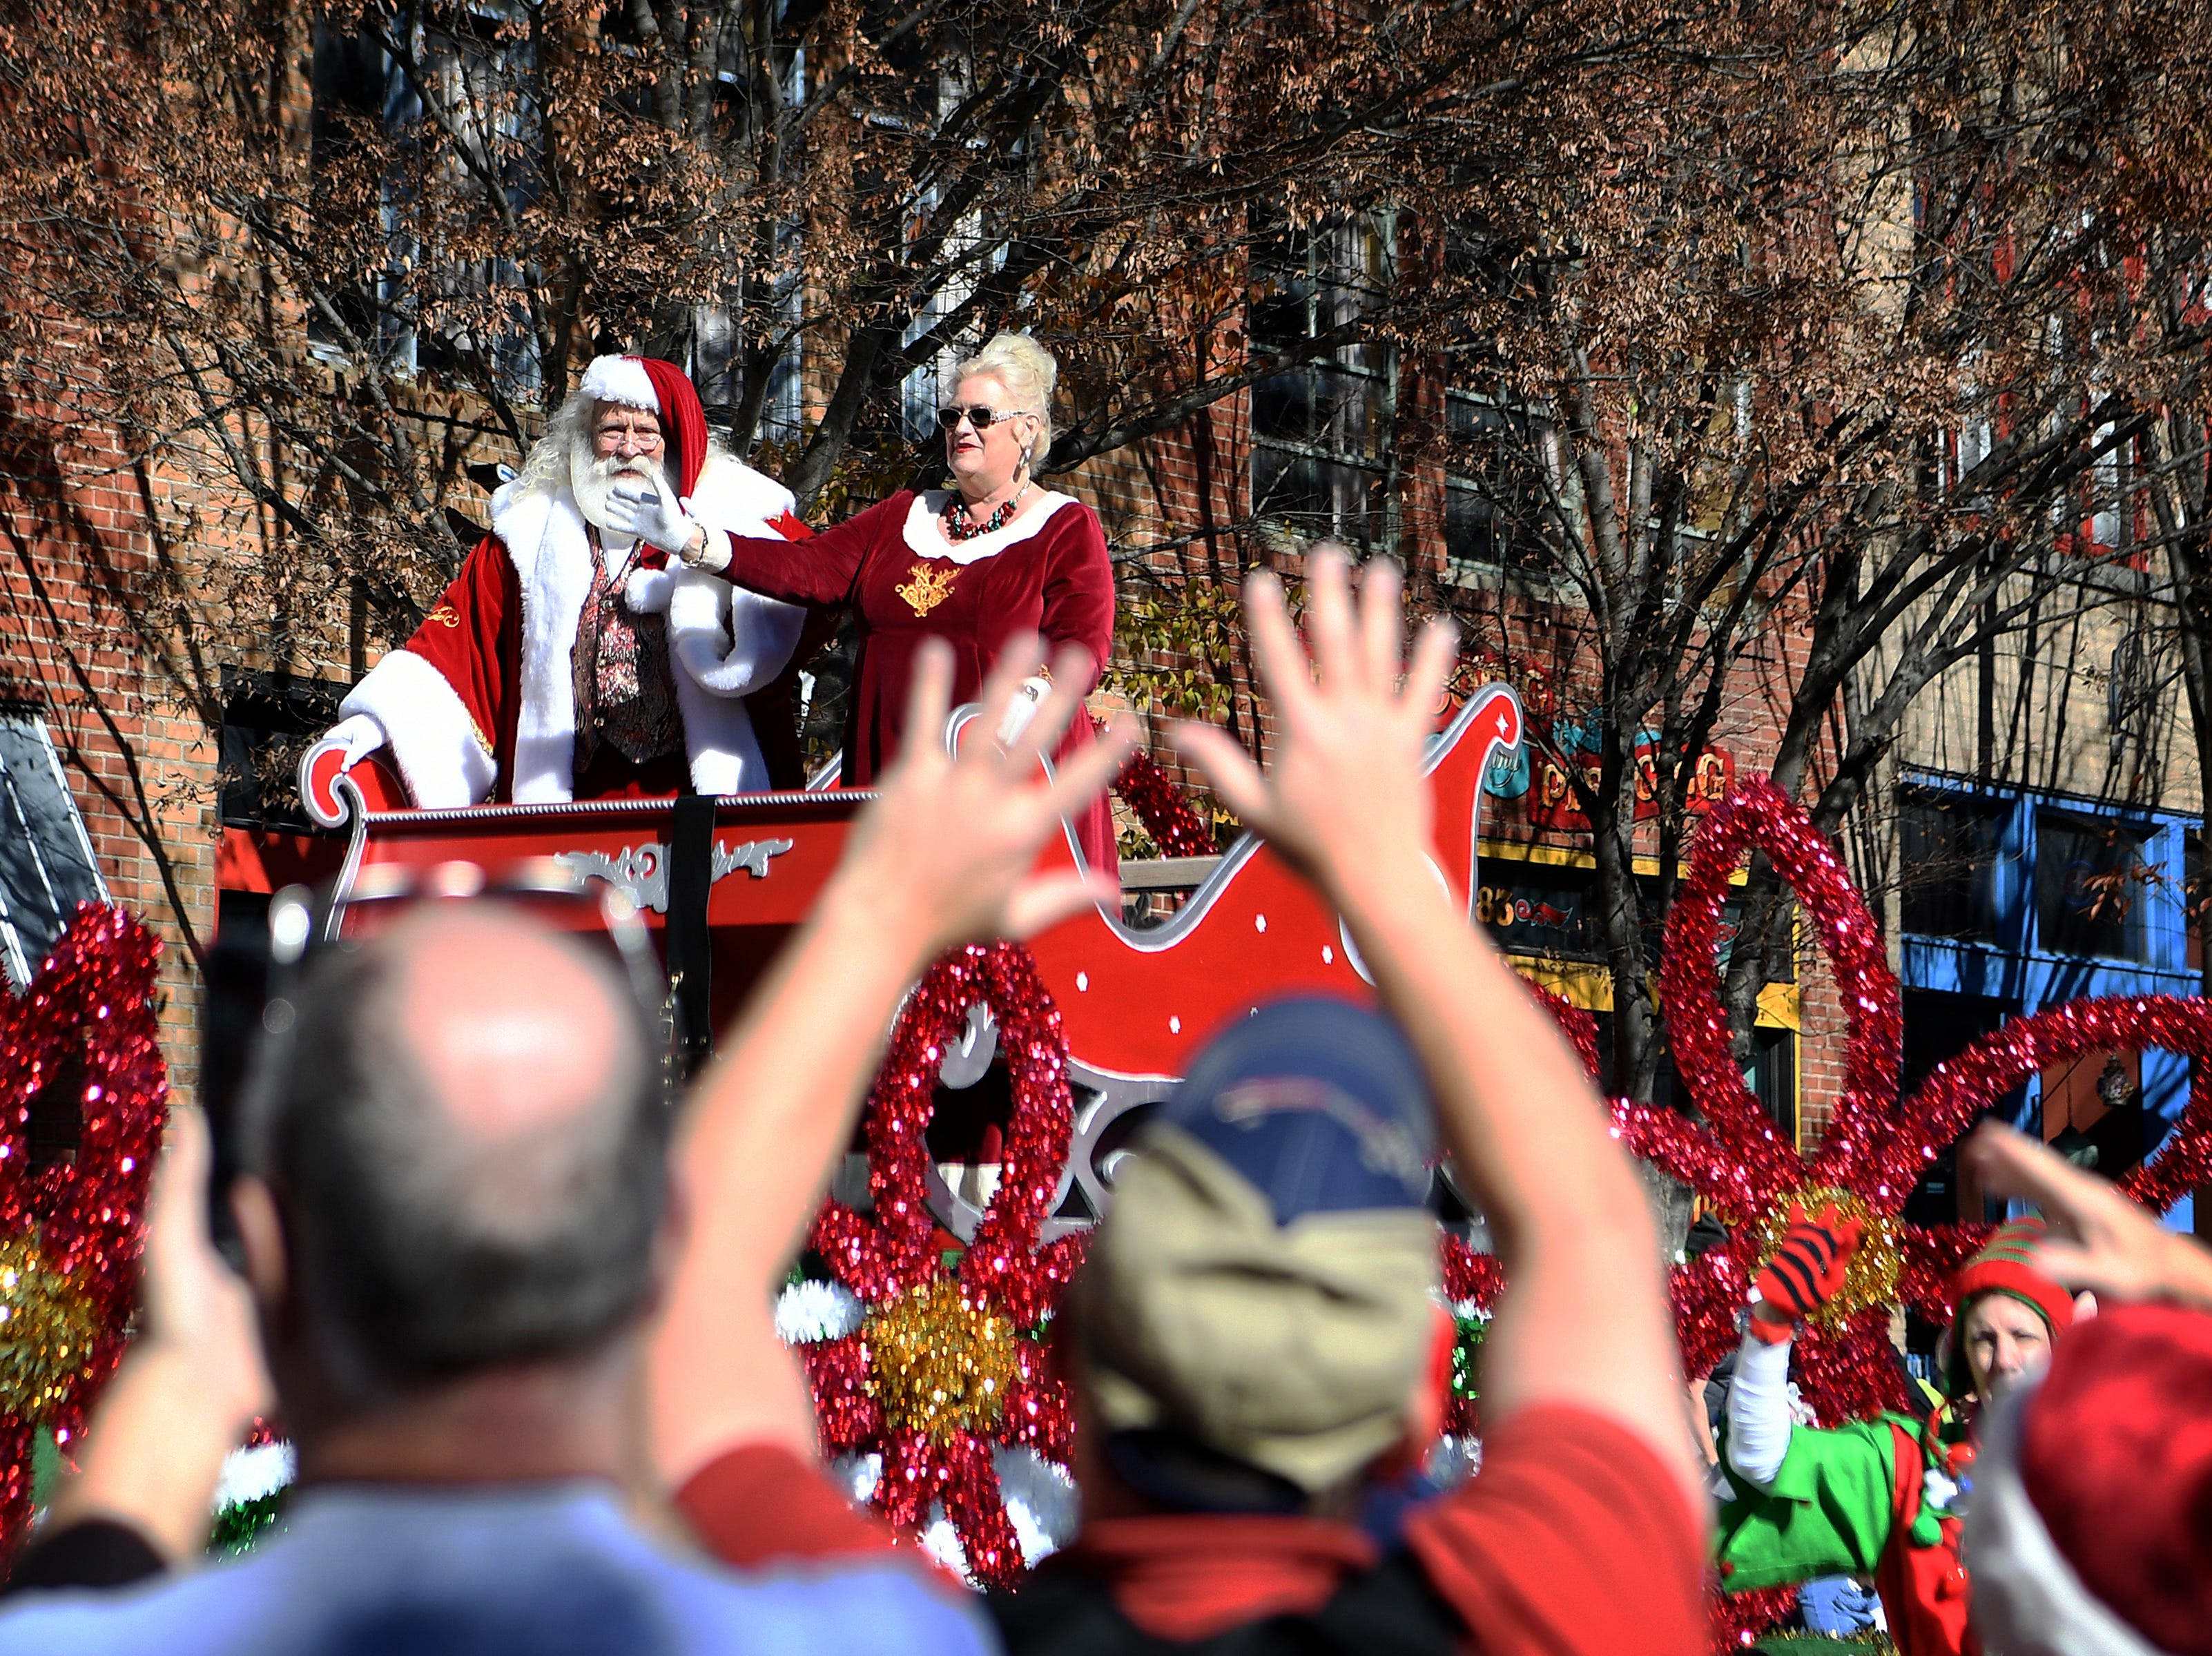 Santa and Mrs. Claus aboard the North Carolina Arboretum Winter Lights float make their way down Patton Avenue to close out the 2018 Asheville Holiday Parade on Nov. 17, 2018. More than 100 entries walked through the streets lined with spectators in the parade this year.